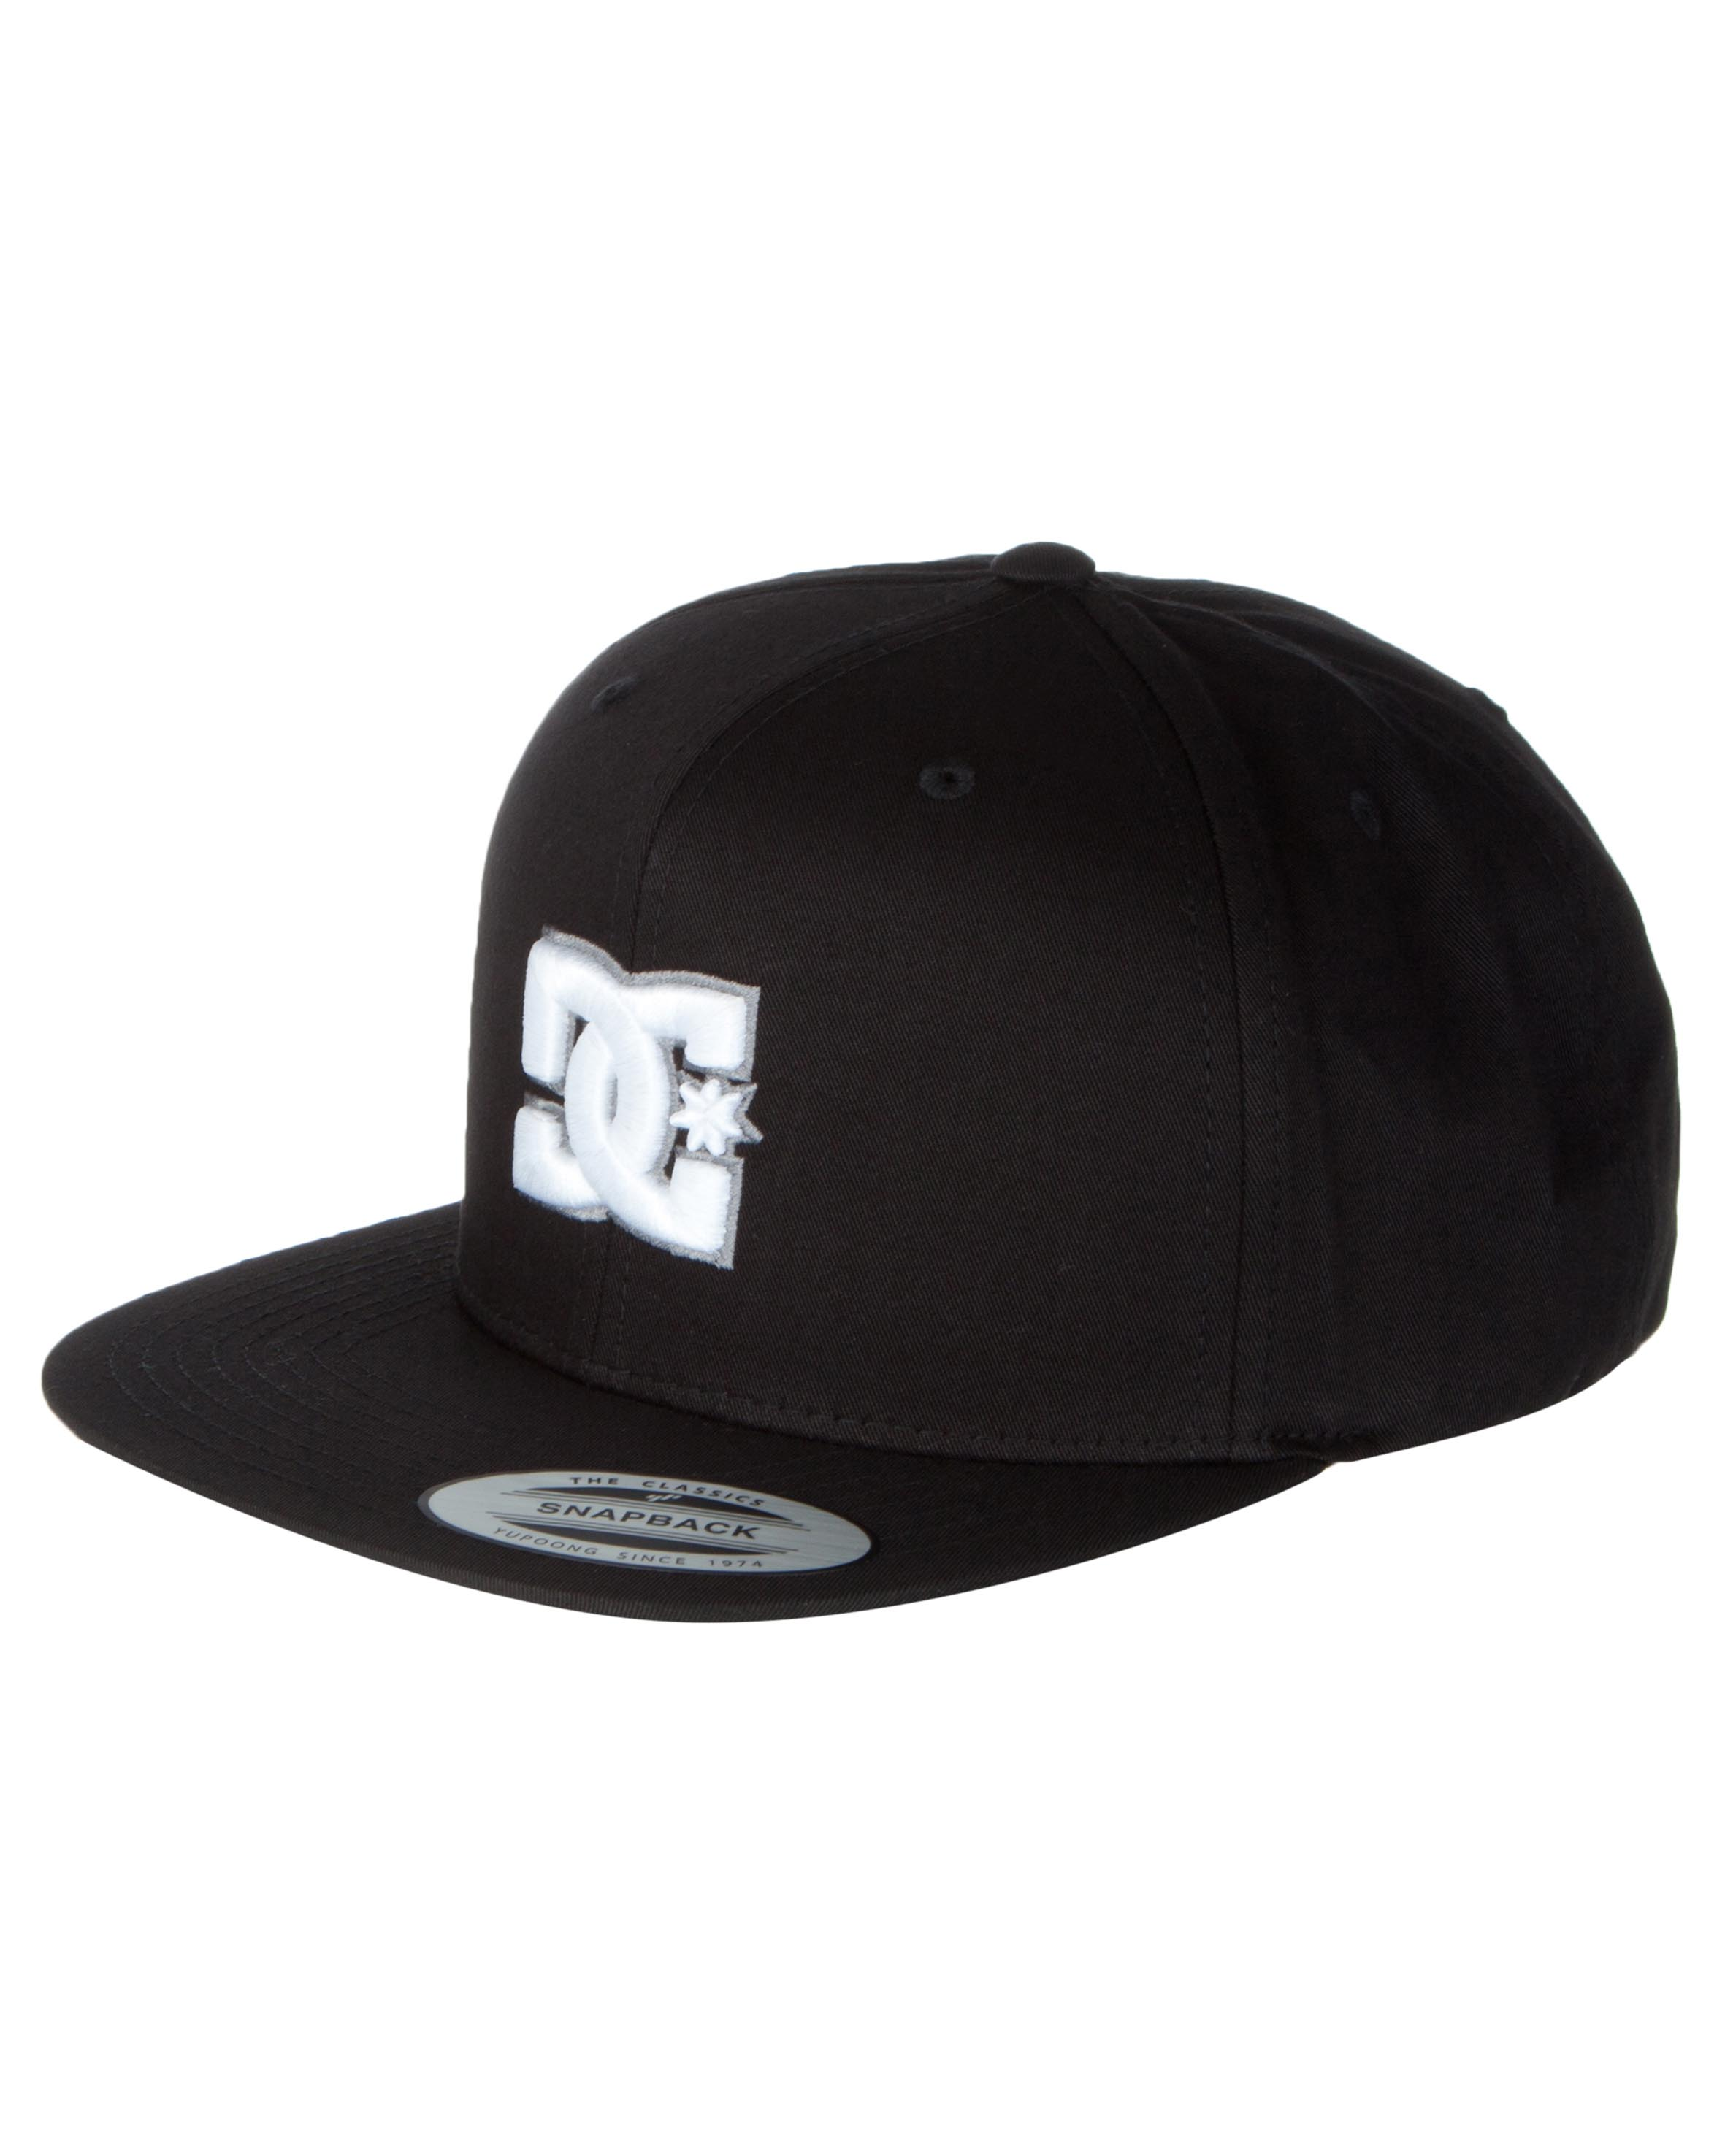 Compare Prices on Dc Shoes Mens- Online Shopping/Buy Low Price Dc